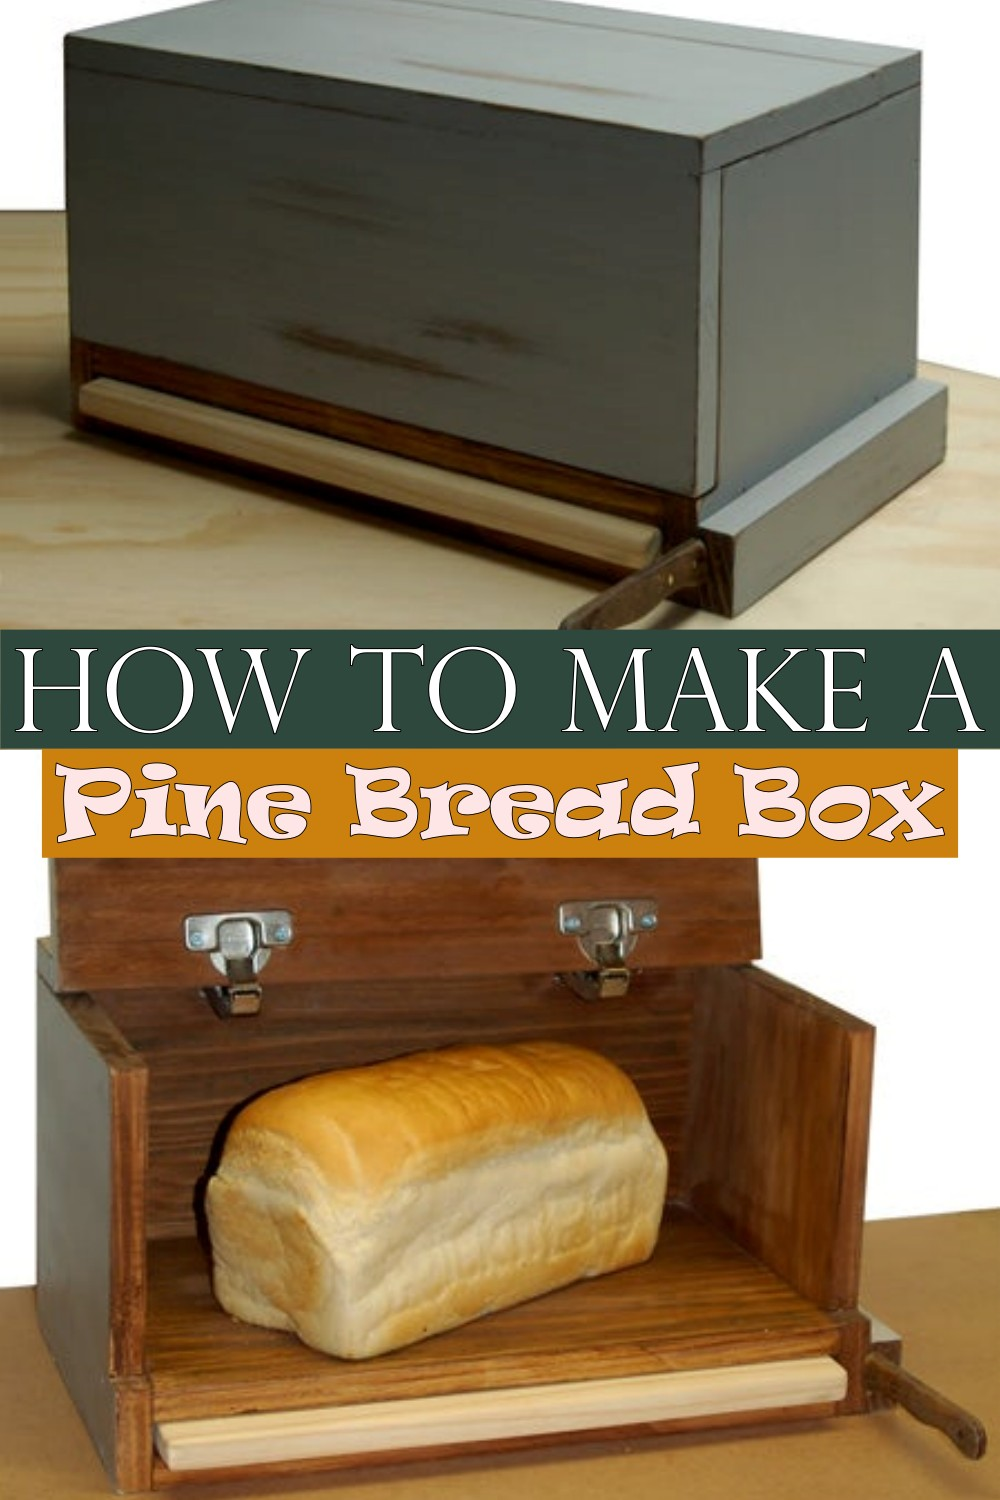 How To Make A Pine Bread Box